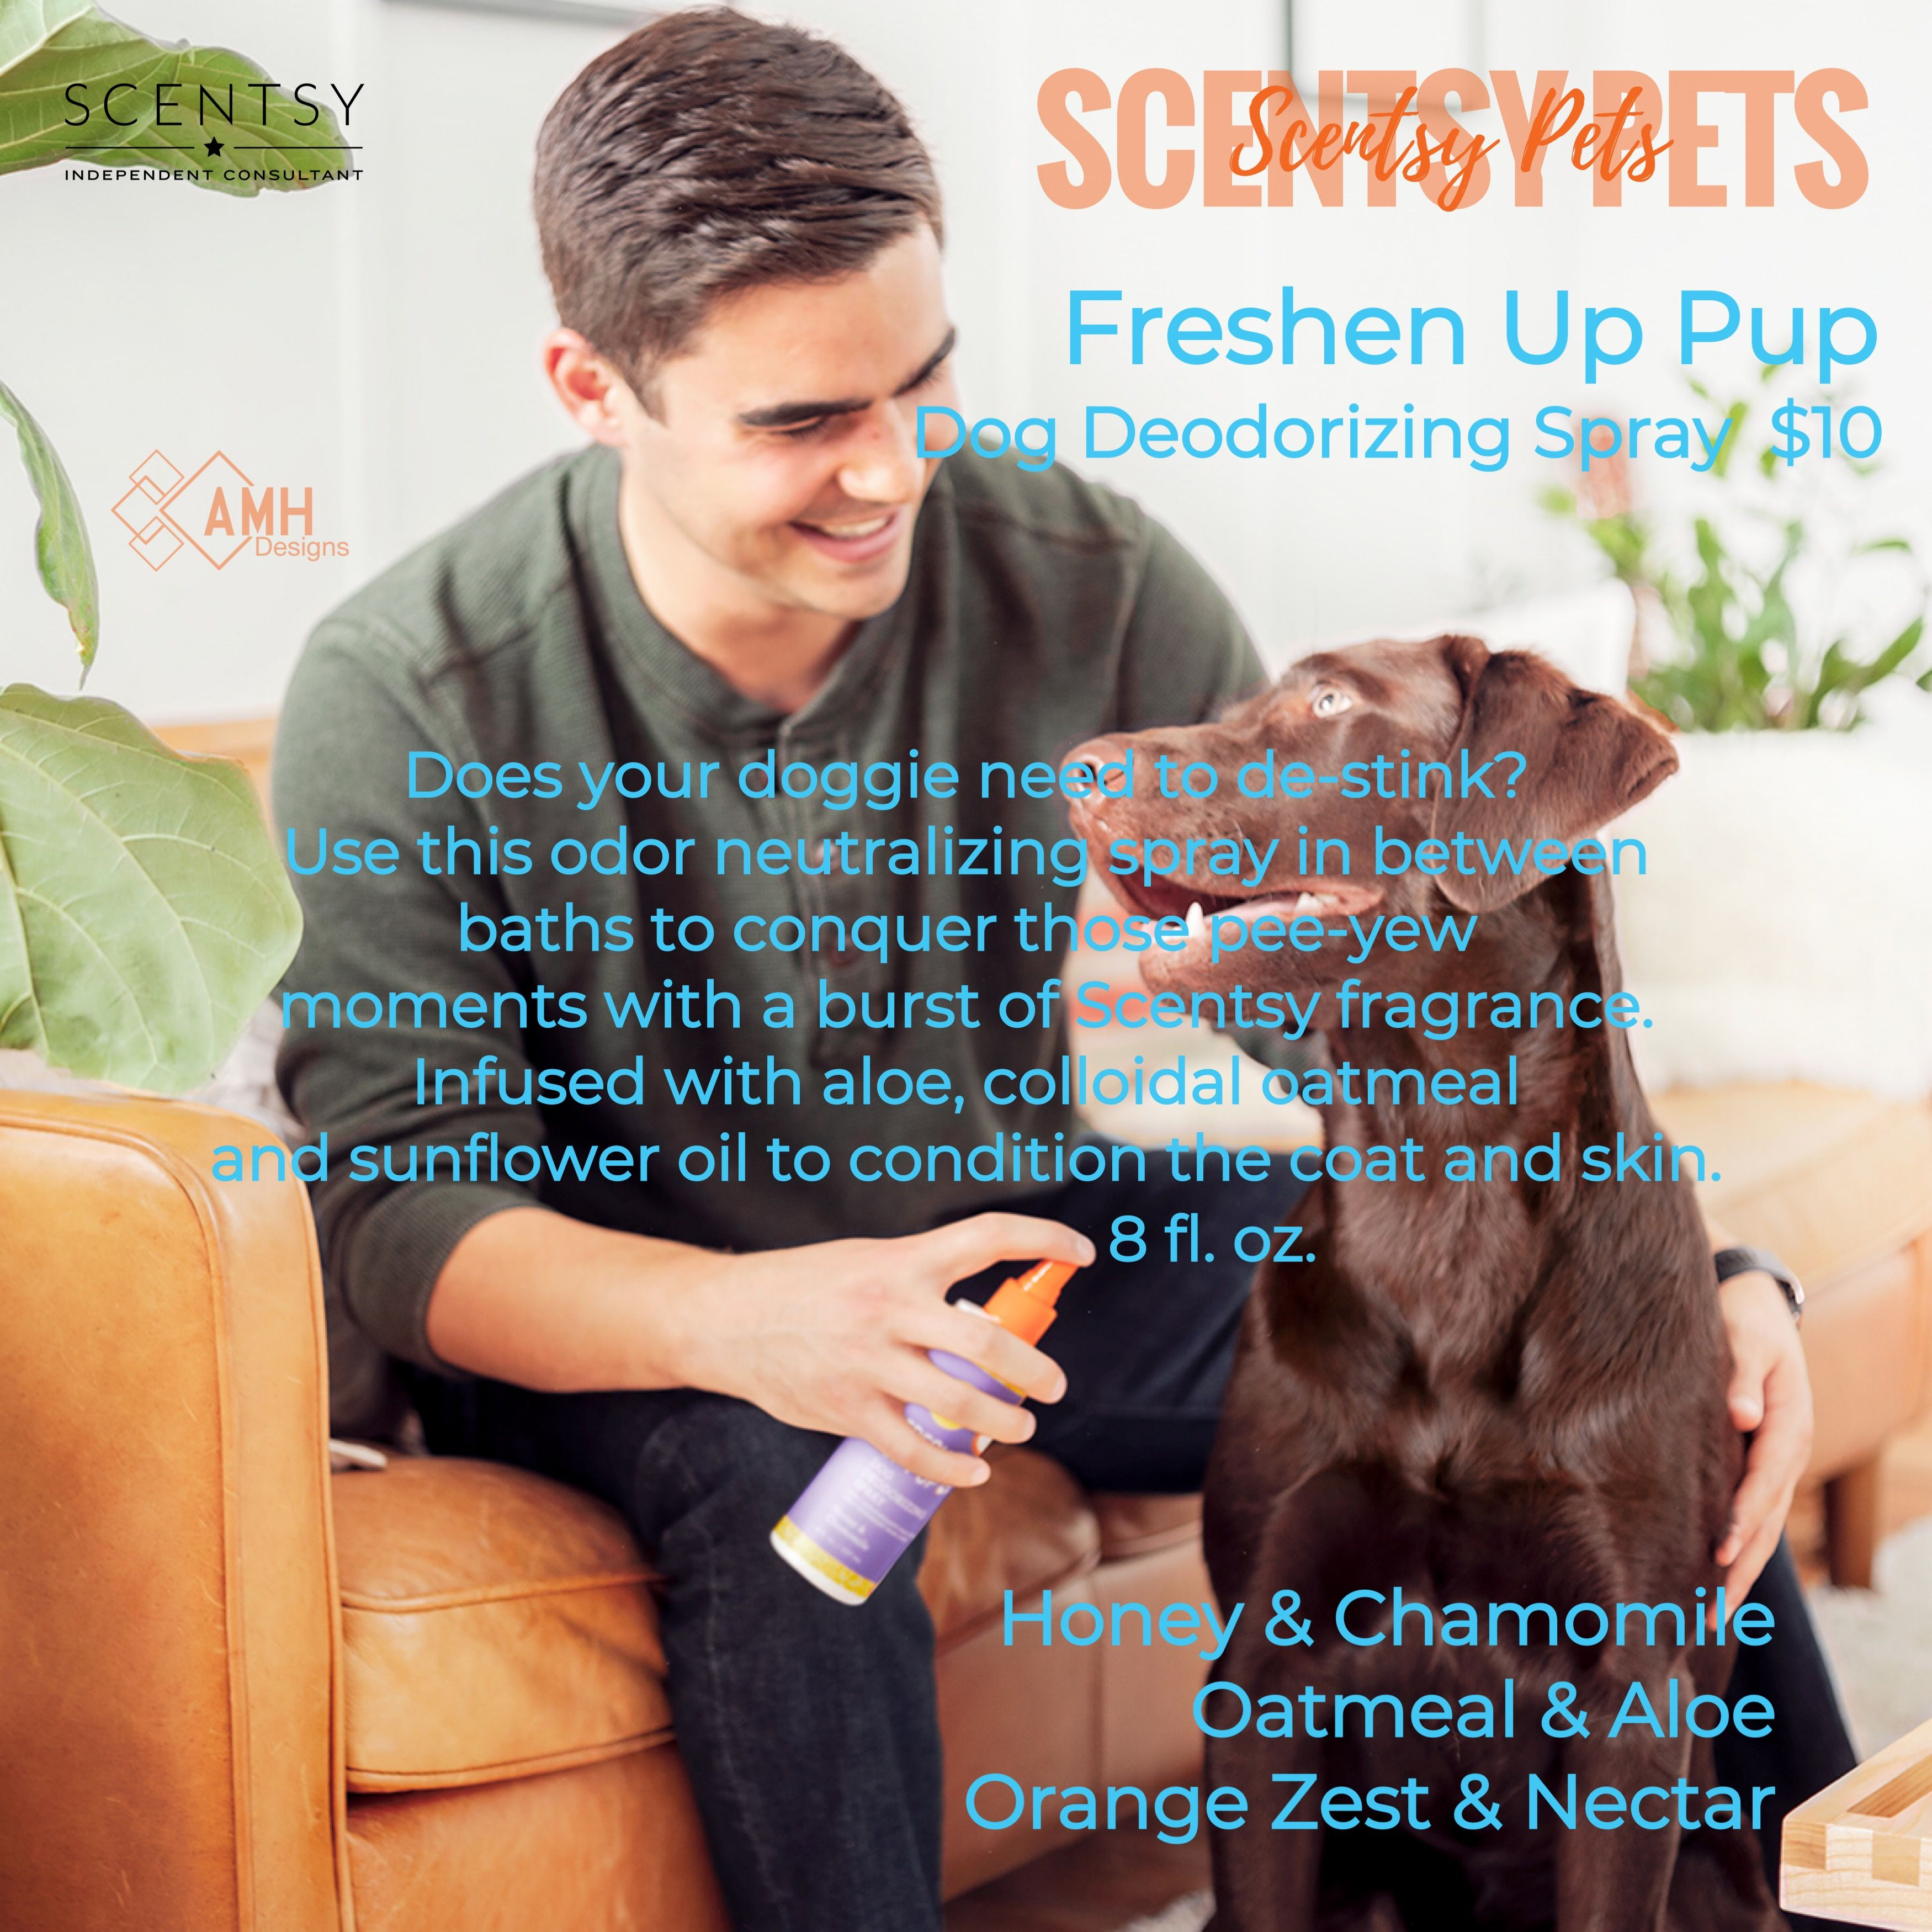 Freshen Up Pup Scentsy, Scentsy fragrance, Scentsy business